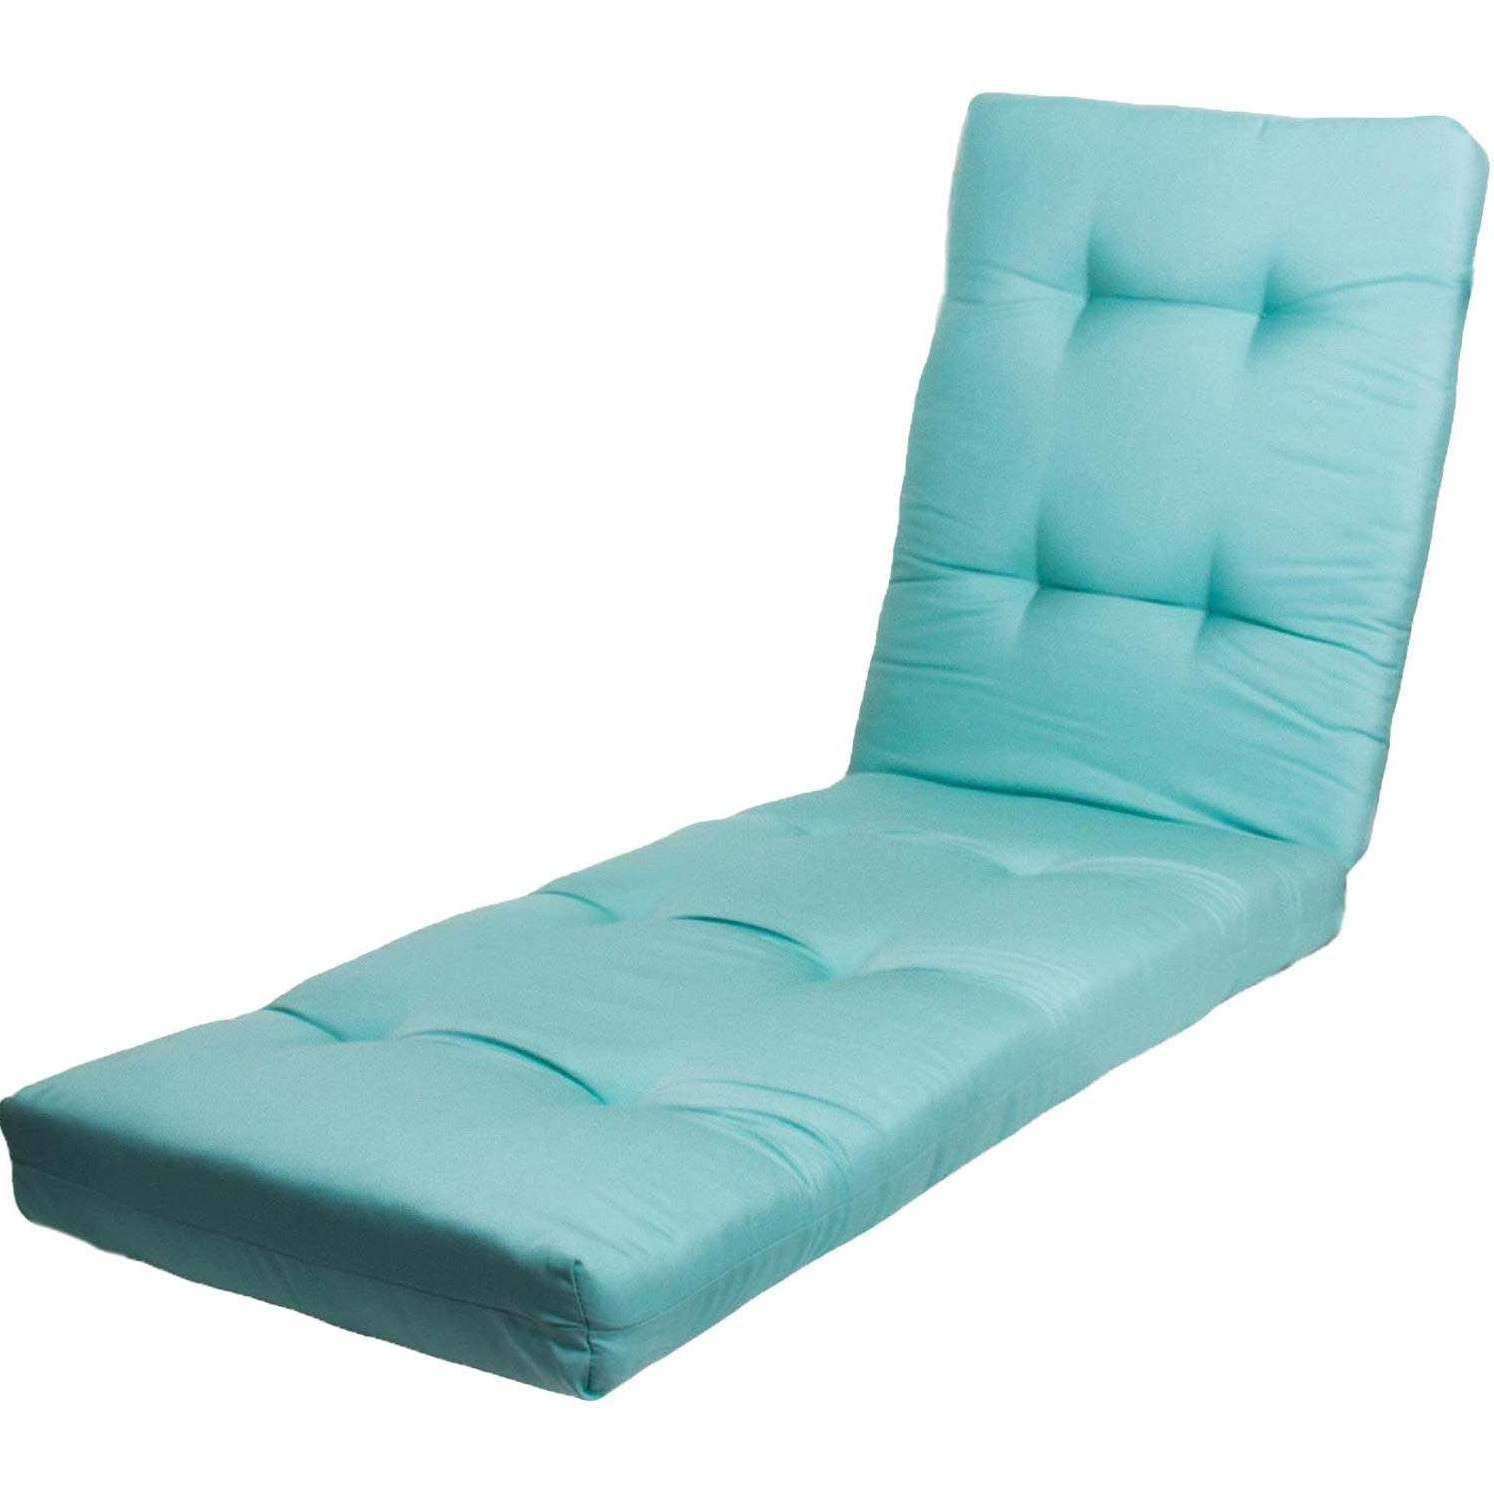 Sunbrella Canvas Glacier Extra Long Outdoor Replacement Chaise With Well Known Chaise Lounge Outdoor Cushions (View 14 of 15)